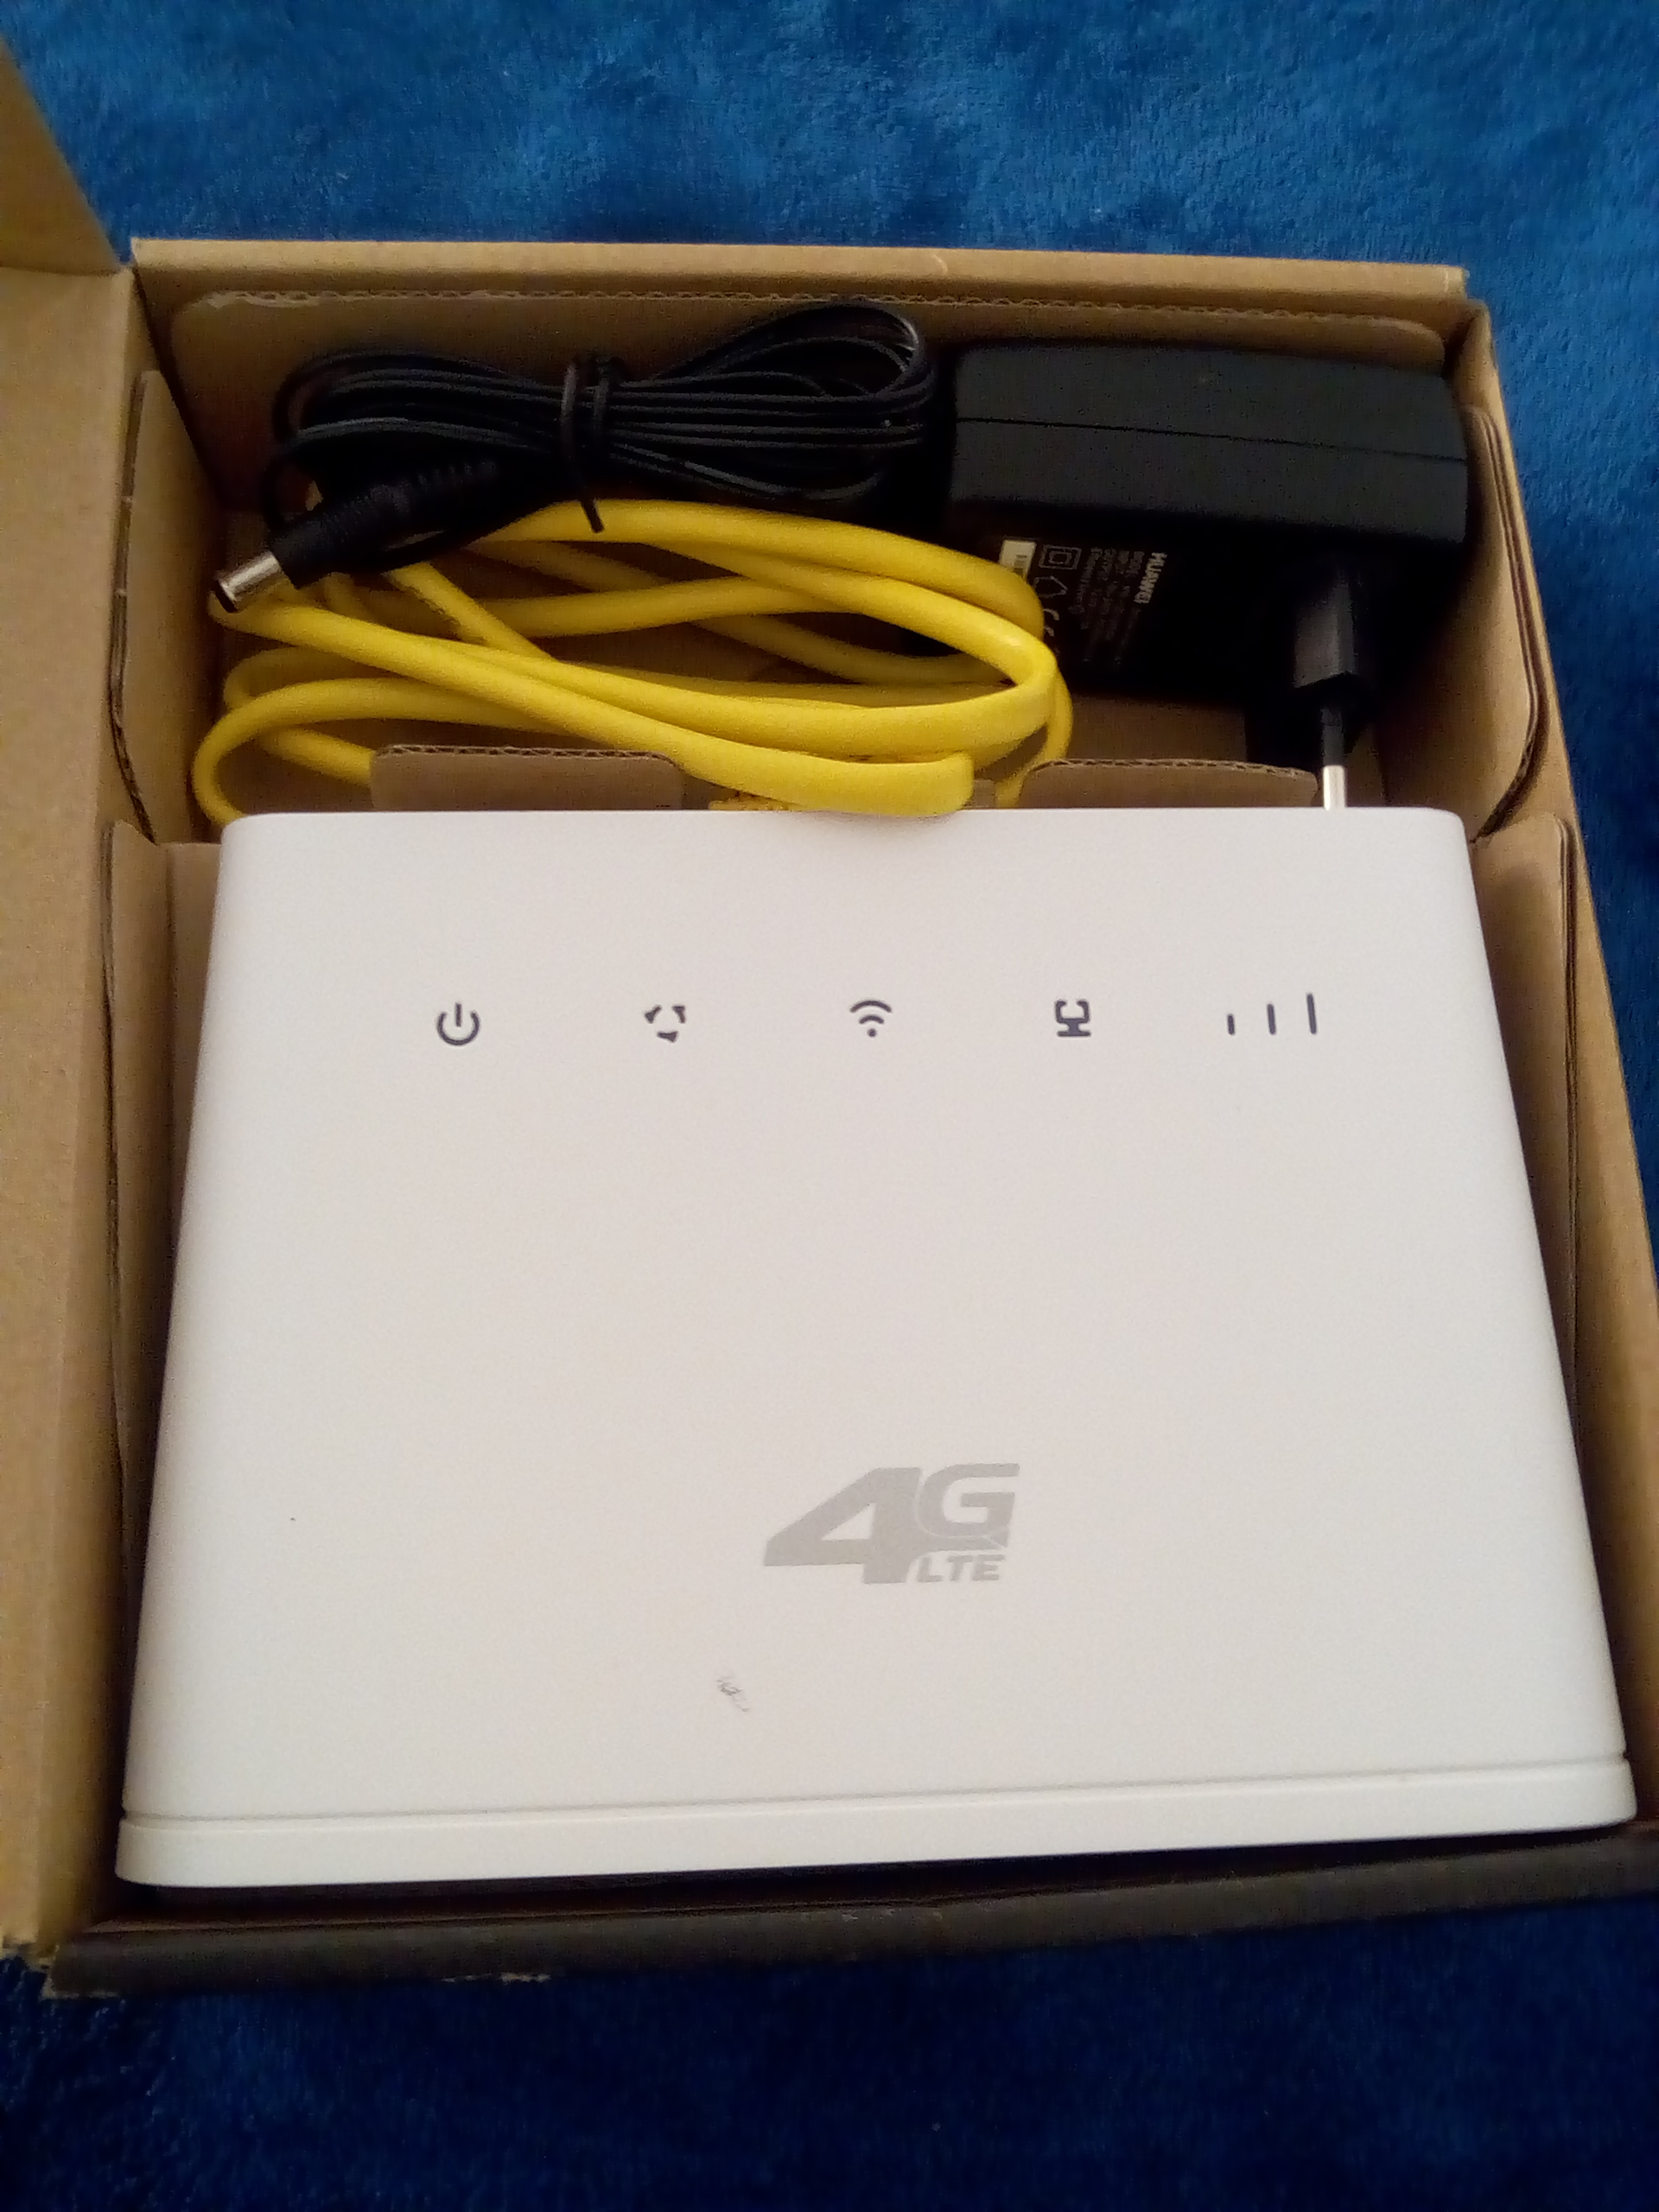 Modem 4G lte huawei ouedkniss